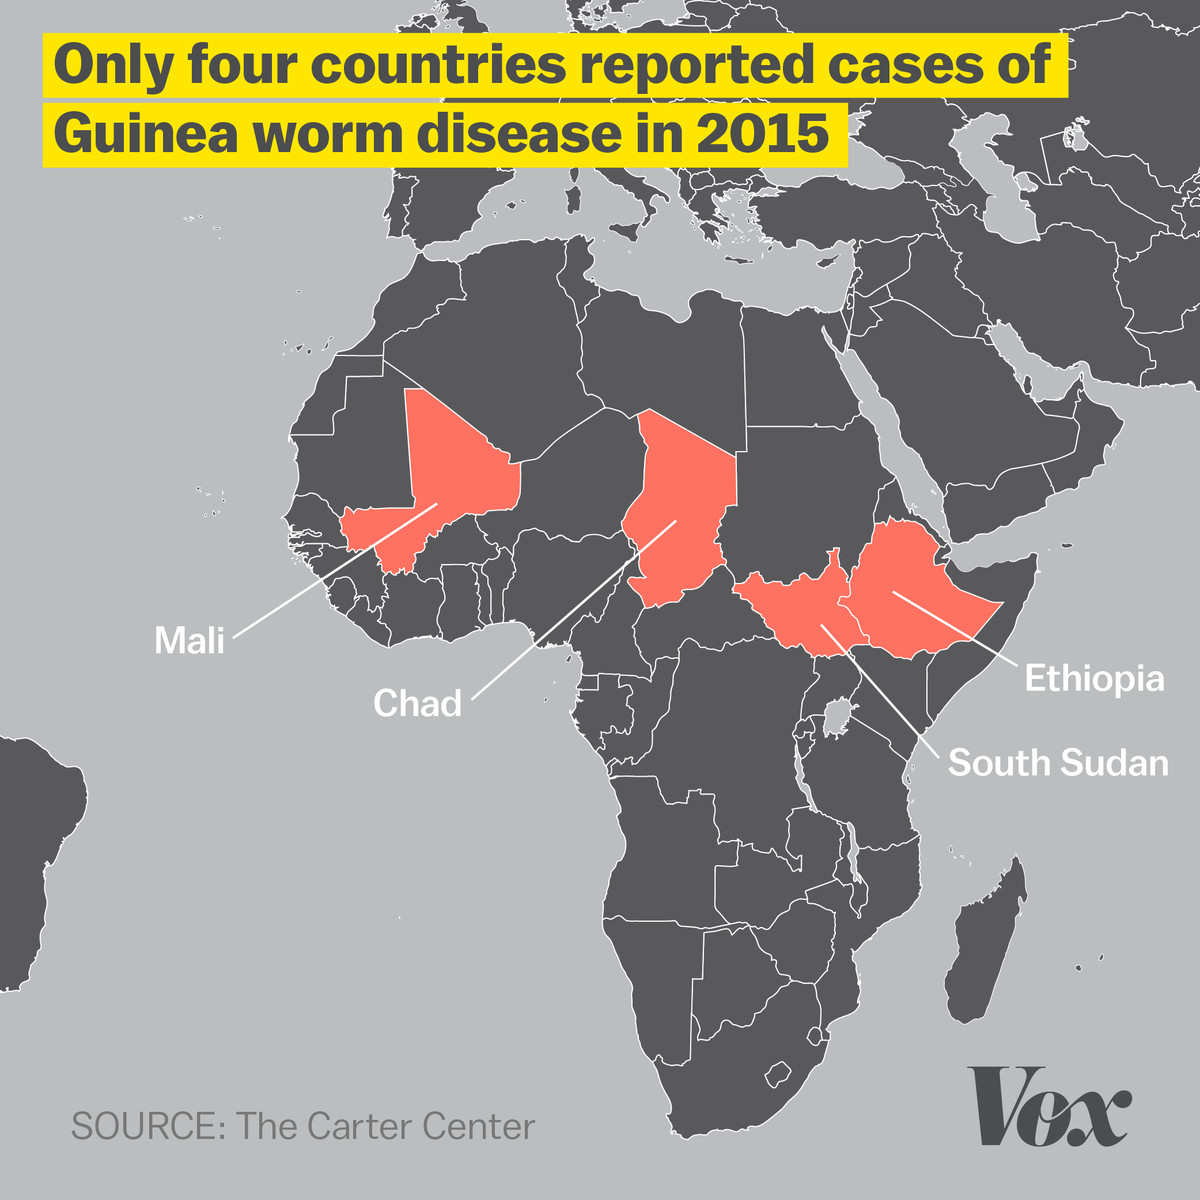 Four countries reported cases of Guinea worm disease in 2015